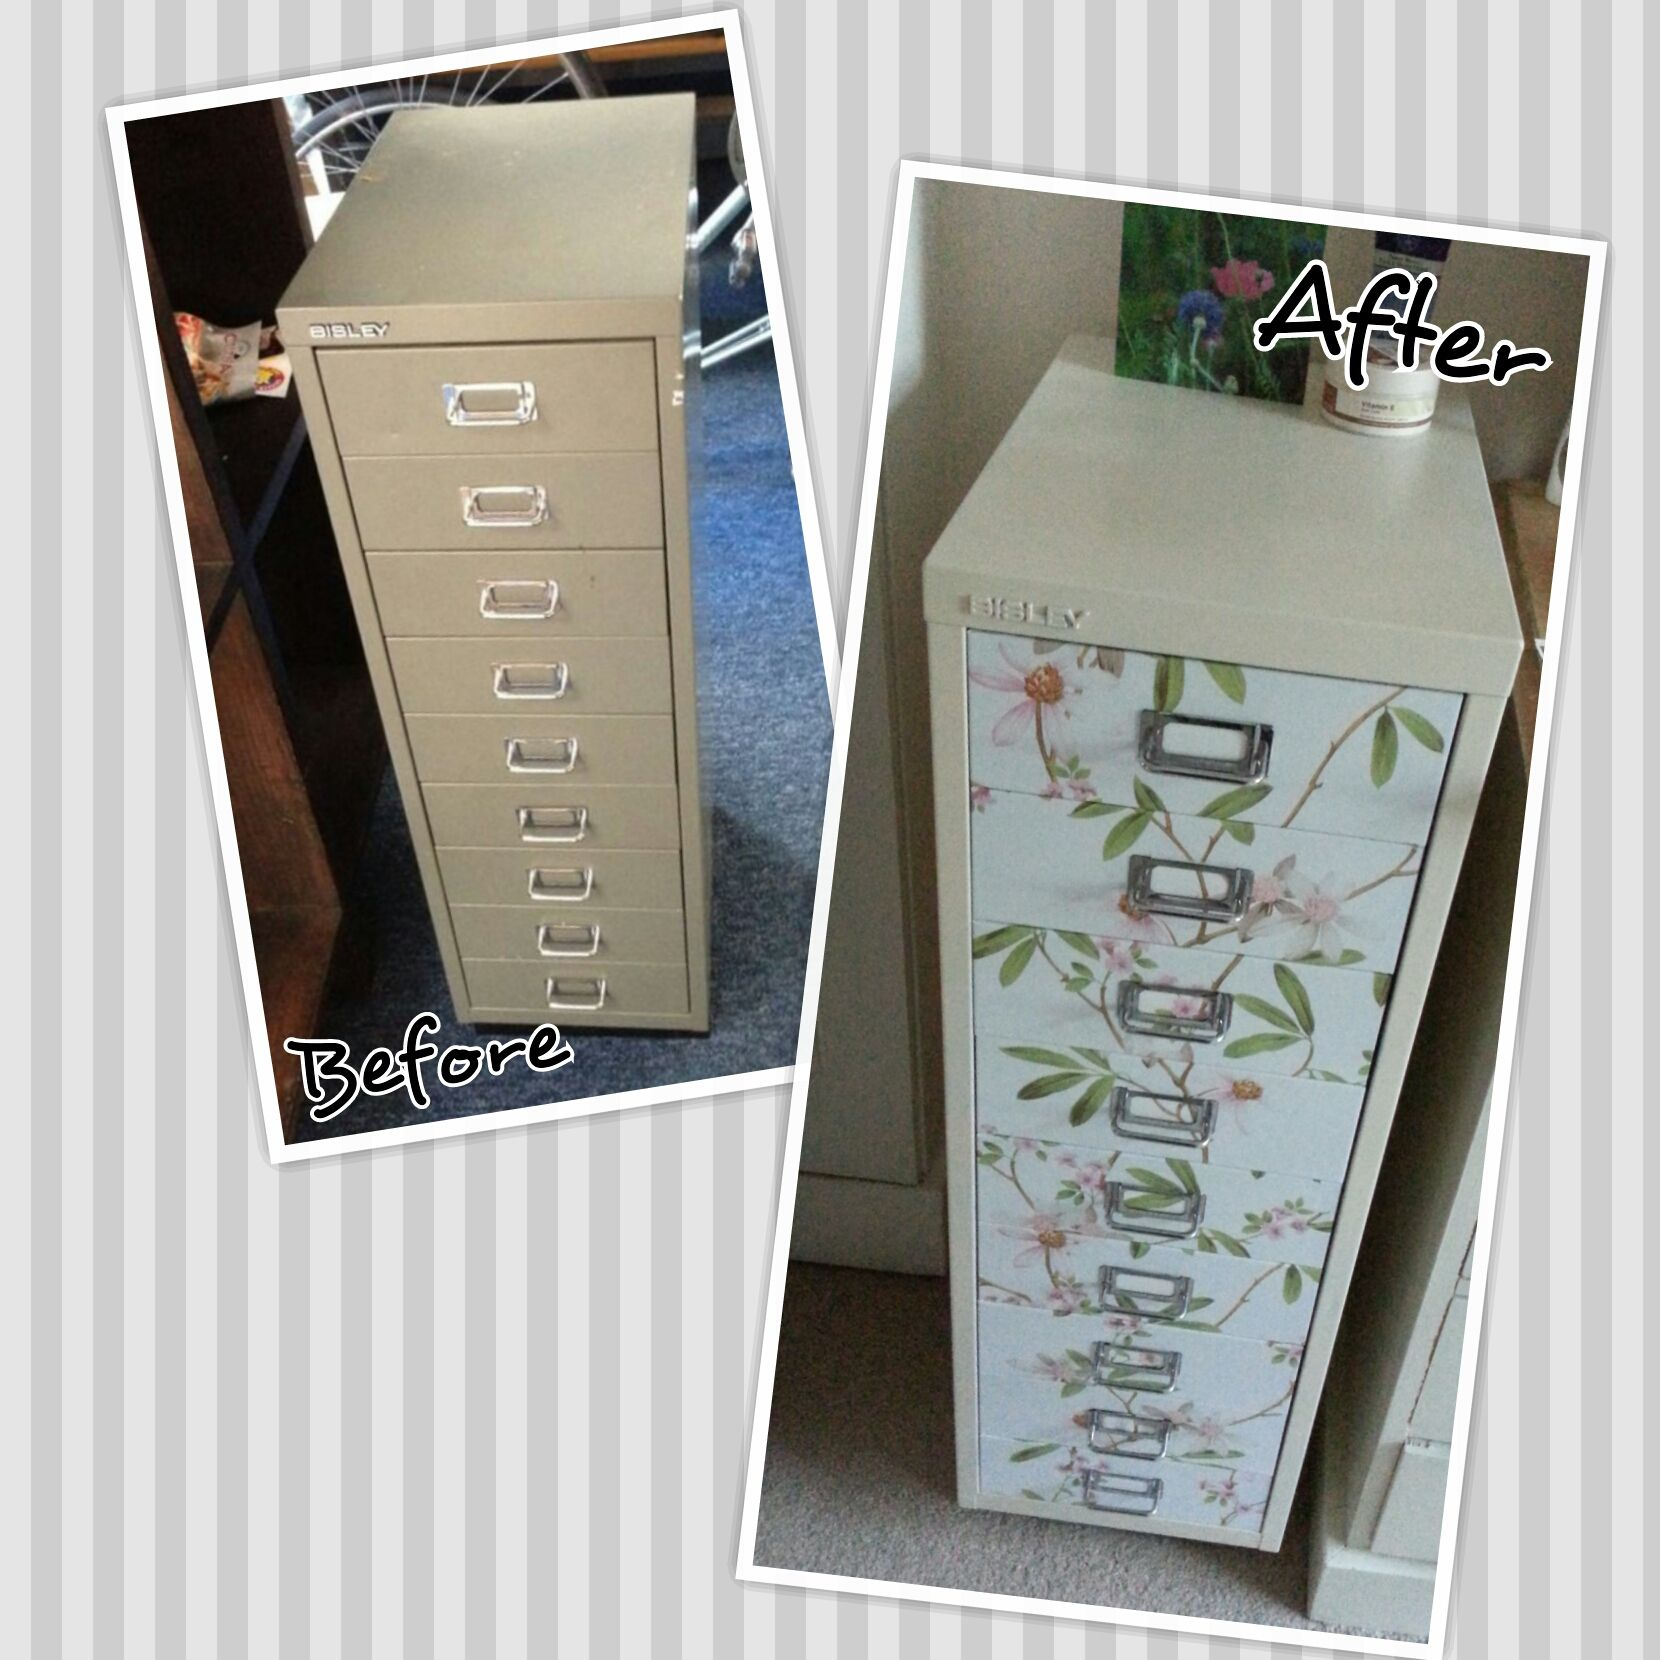 Home Filing Cabinet Makeover Using Cream Spray Paint And Vinyl Sticky Back Plastic. Much Better